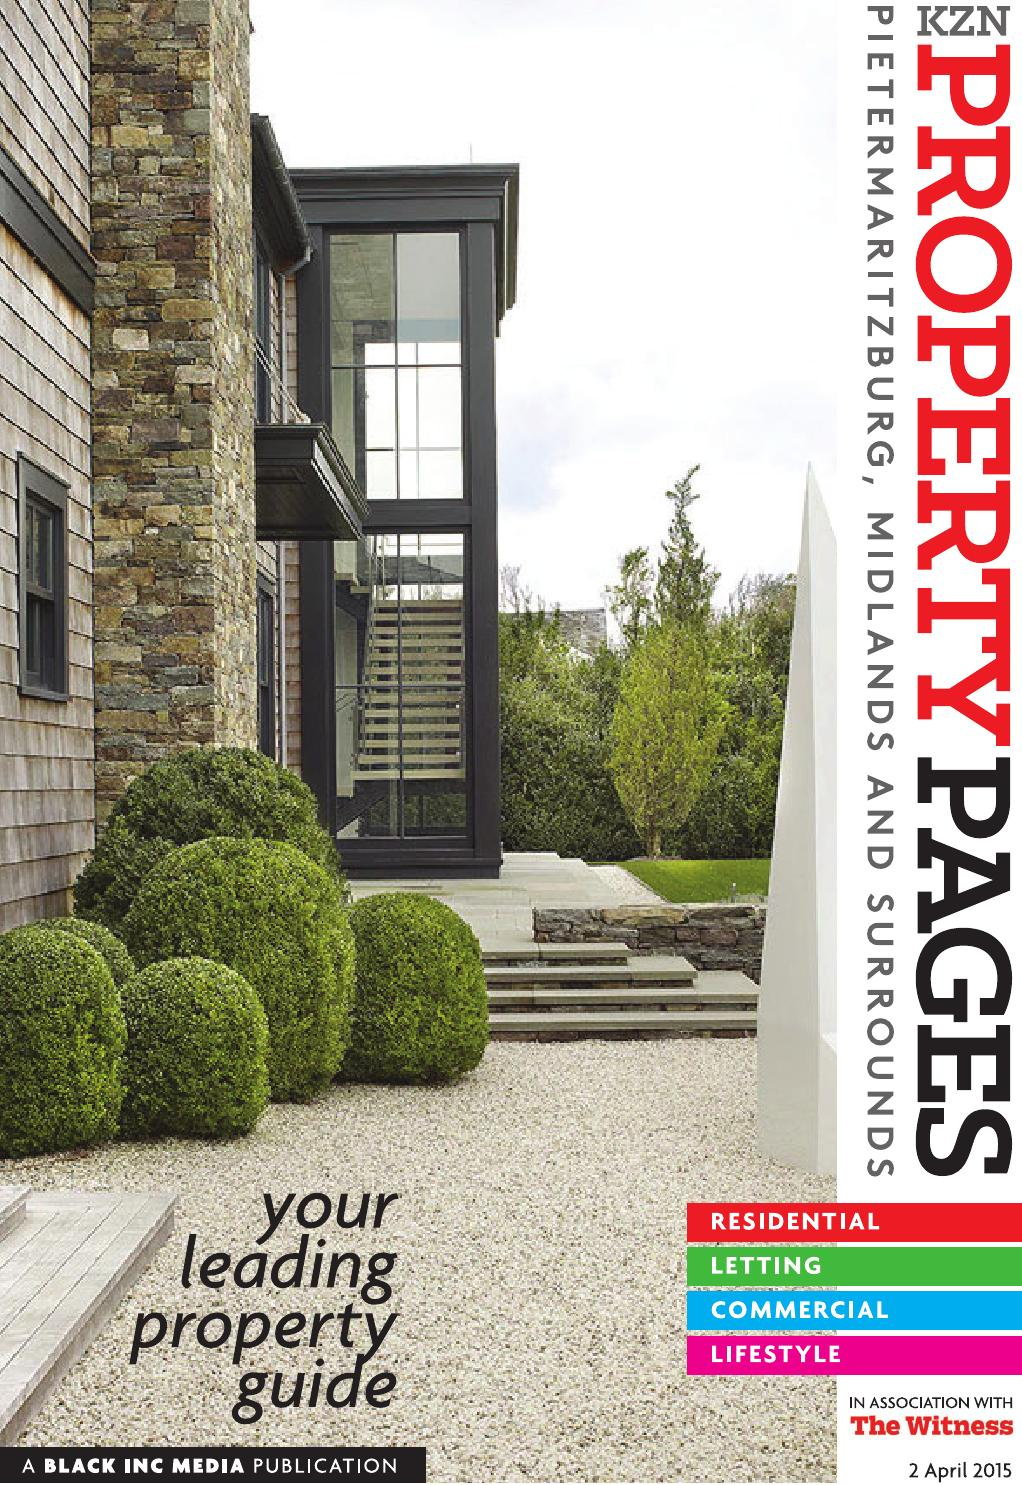 Kzn property pages 2 april 2016 by kzn property pages issuu